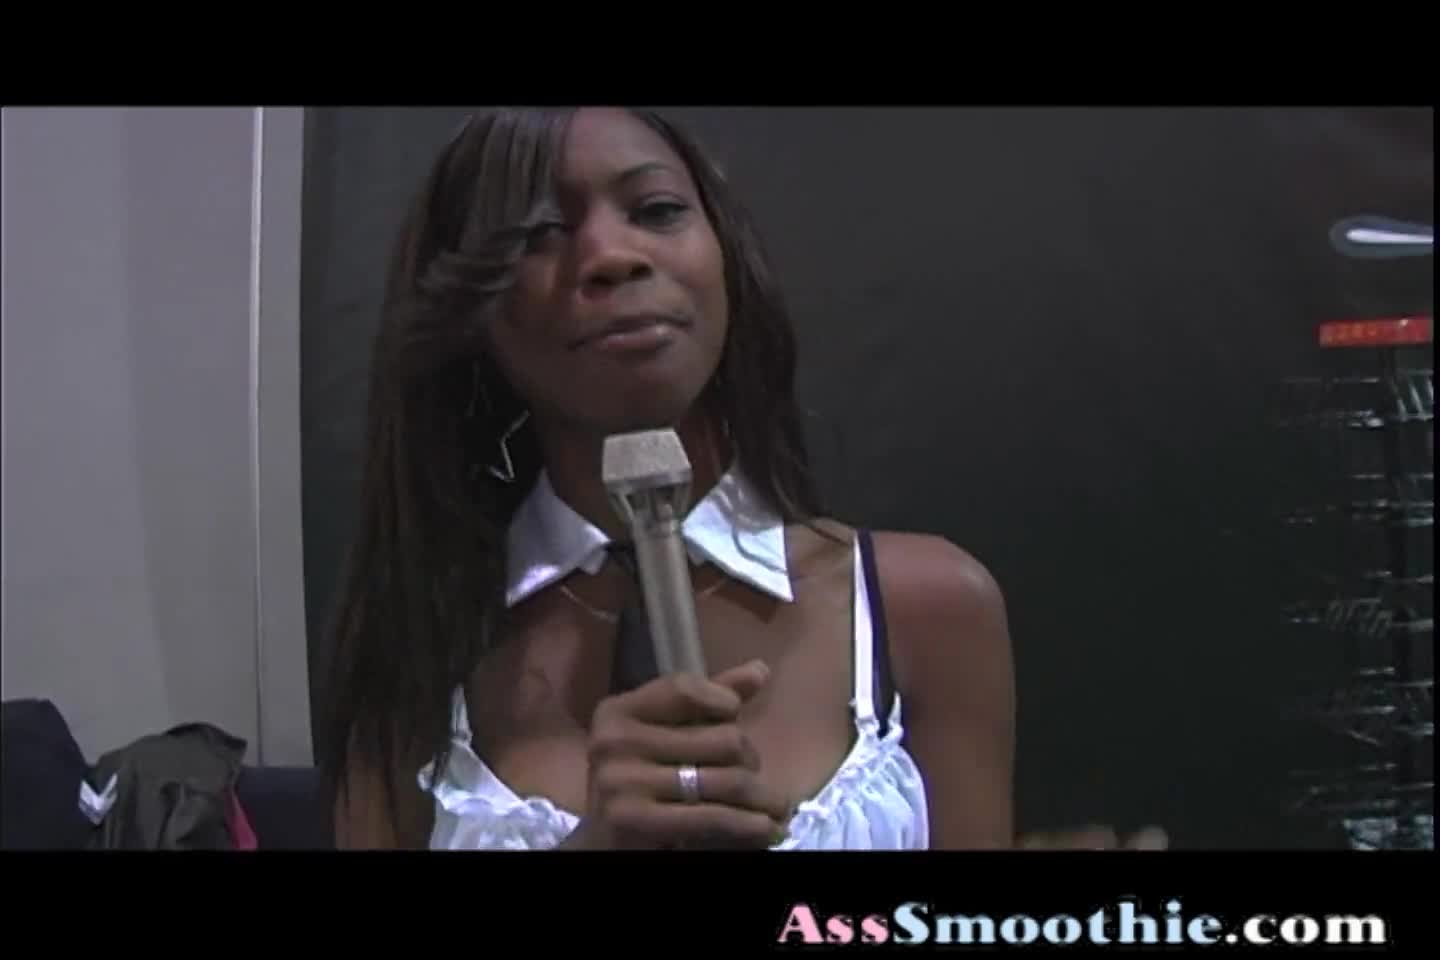 ass smoothie video sex porno